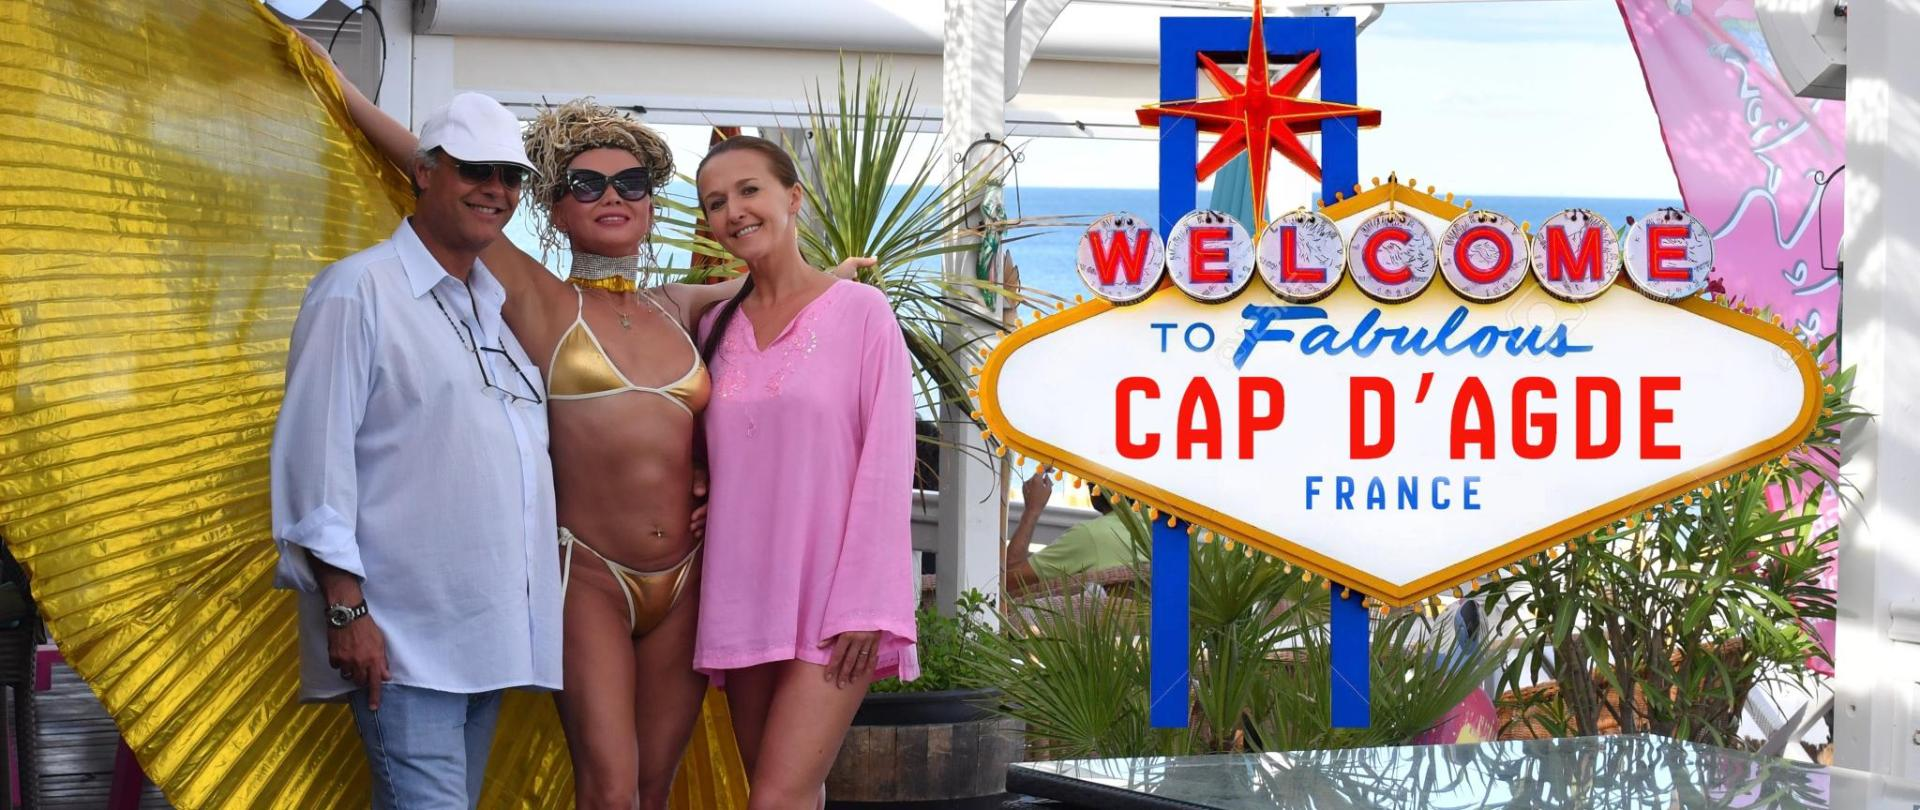 Welcome to Fabulous Cap d'Agde 2019.jpg